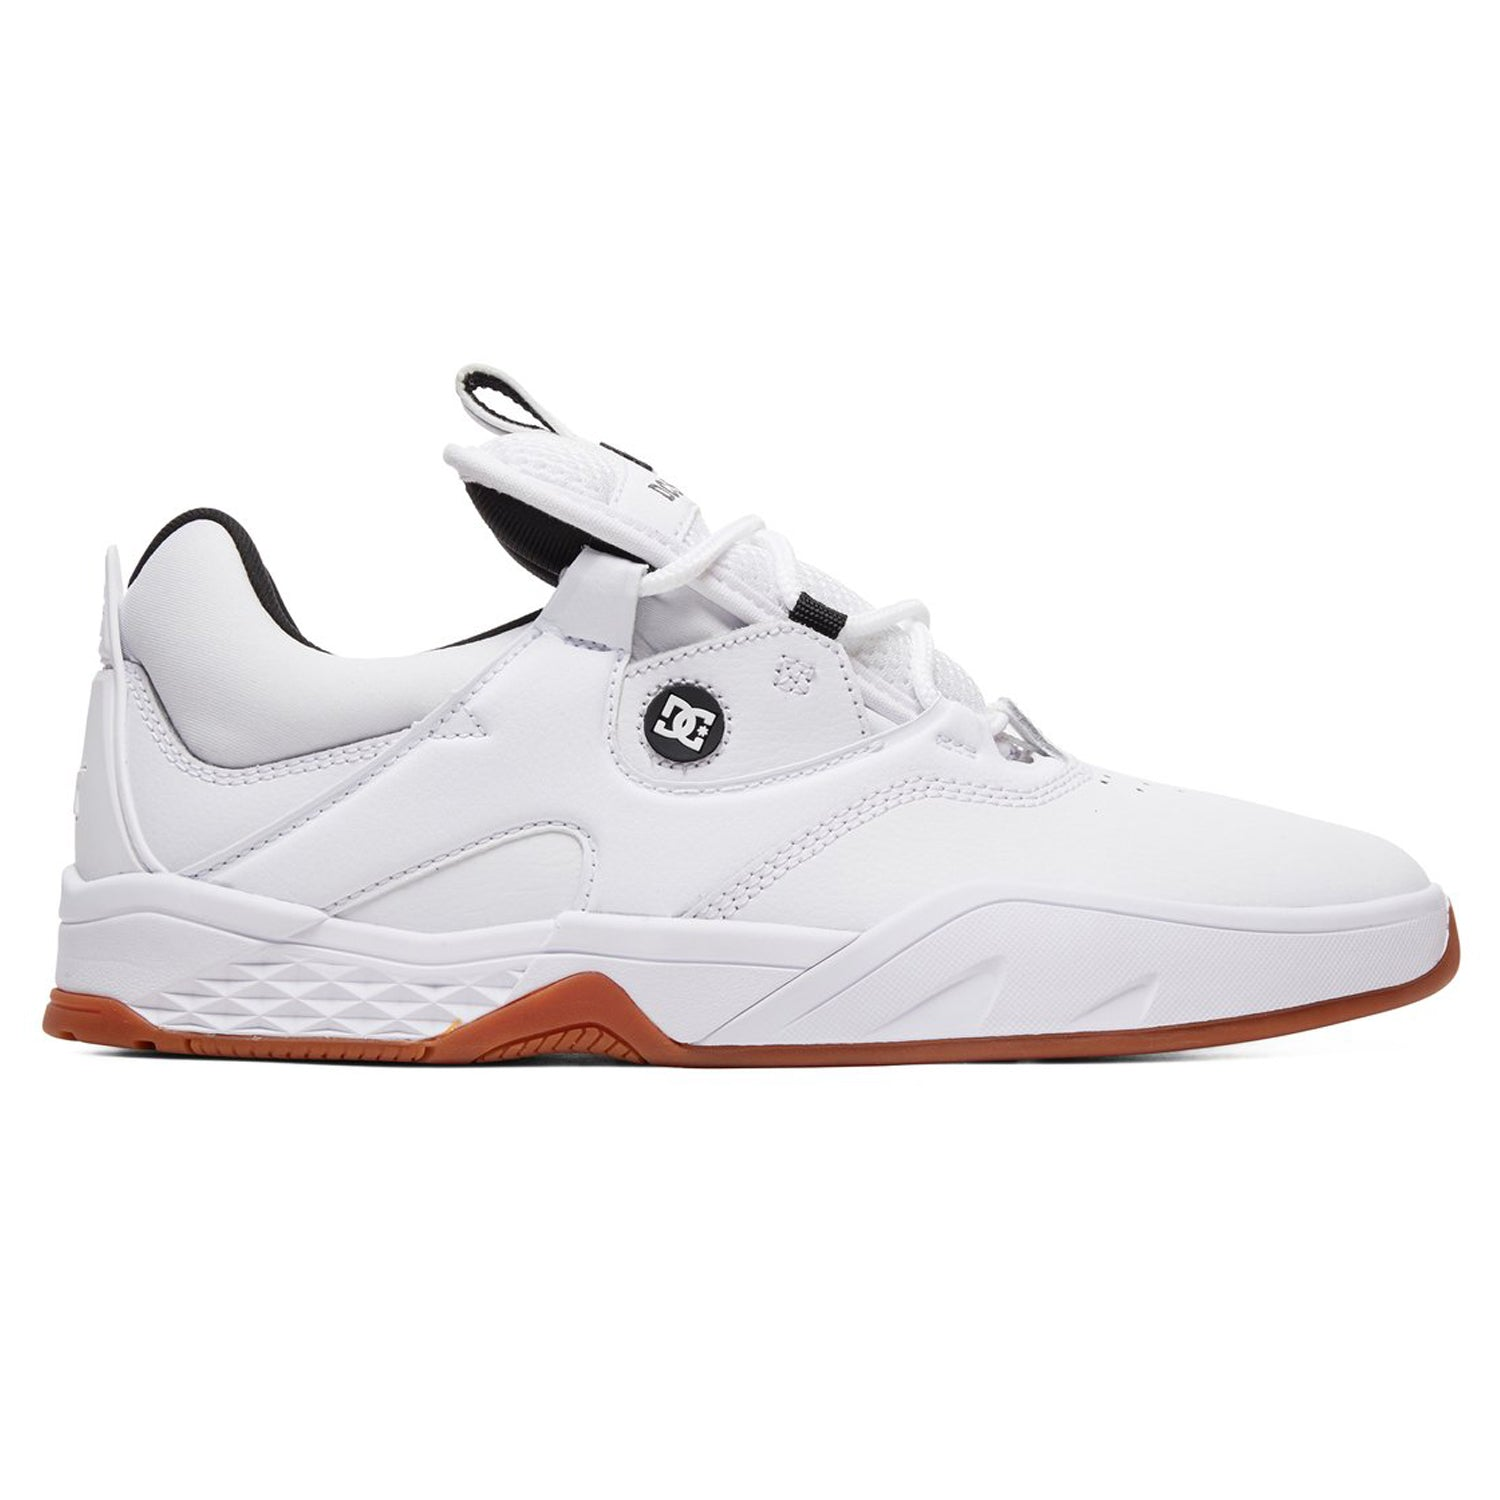 DC Shoes Kalis S White/Black/Gum